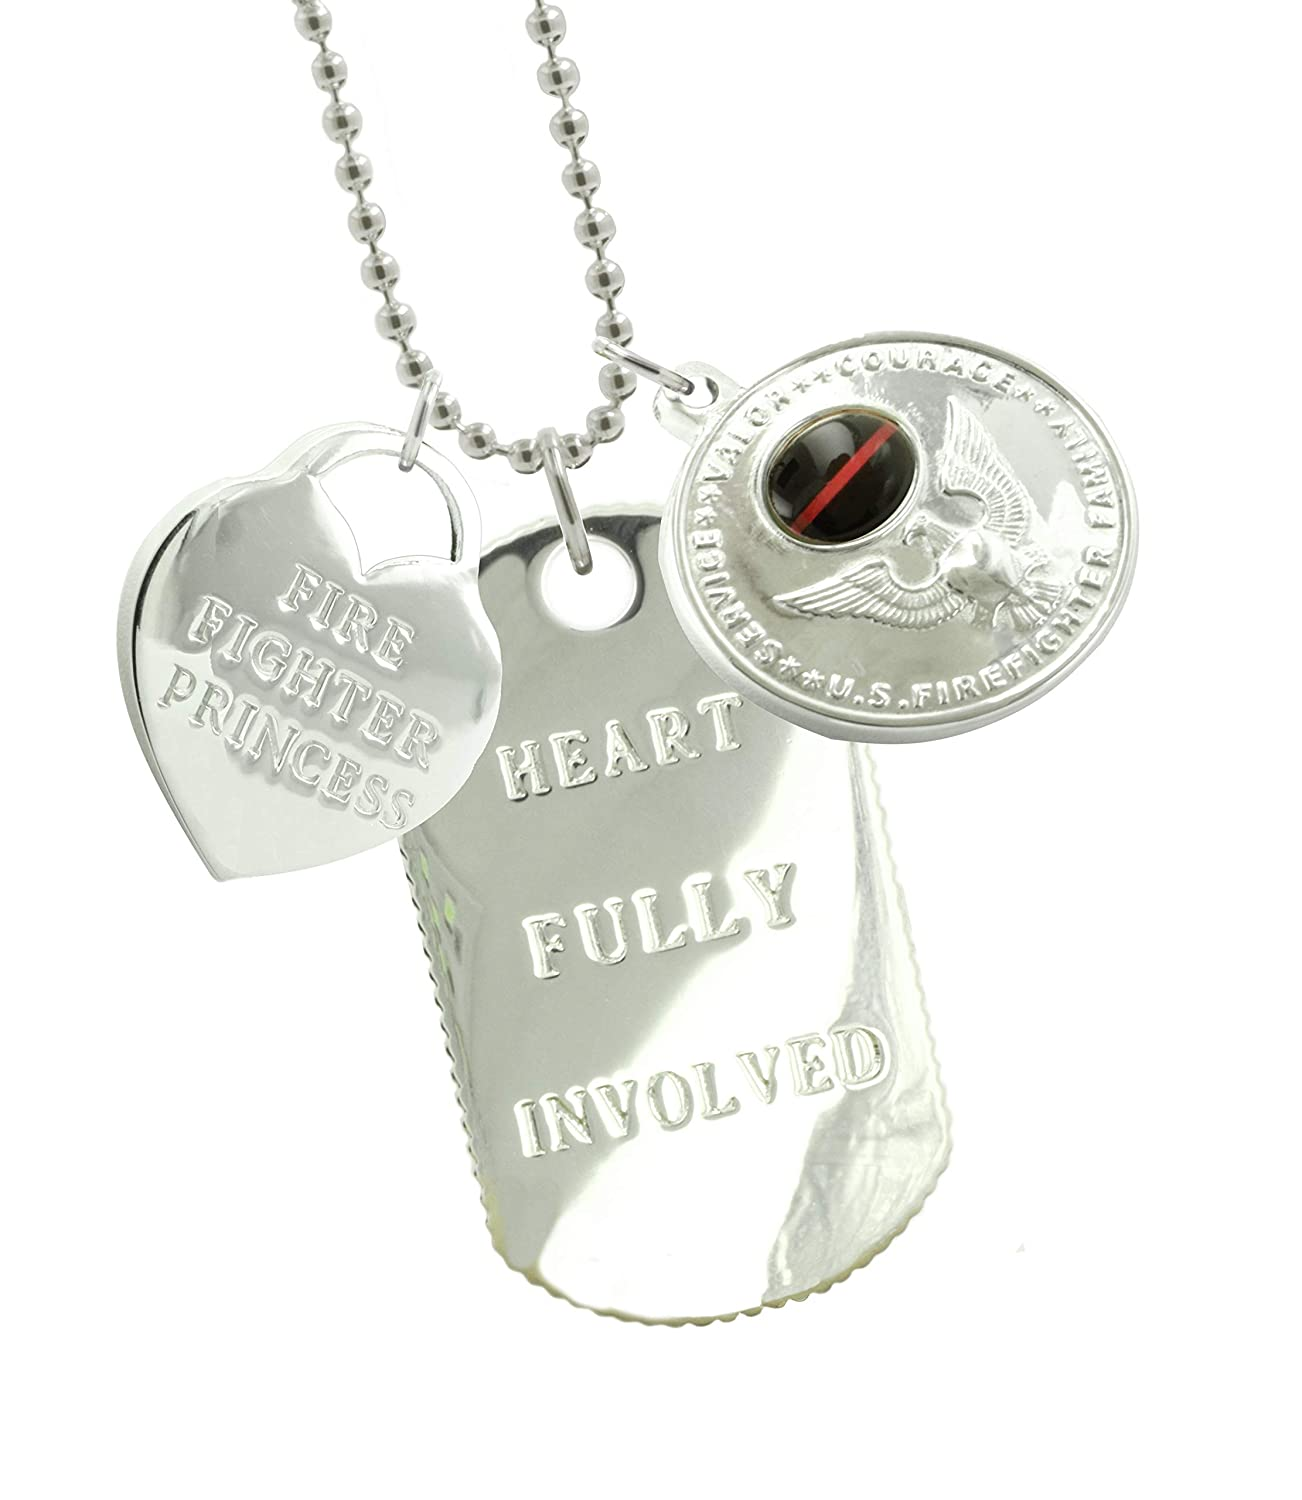 New York 925 & Co. Solid Sterling Silver Firefighter Girlfriend Dog Tag FF